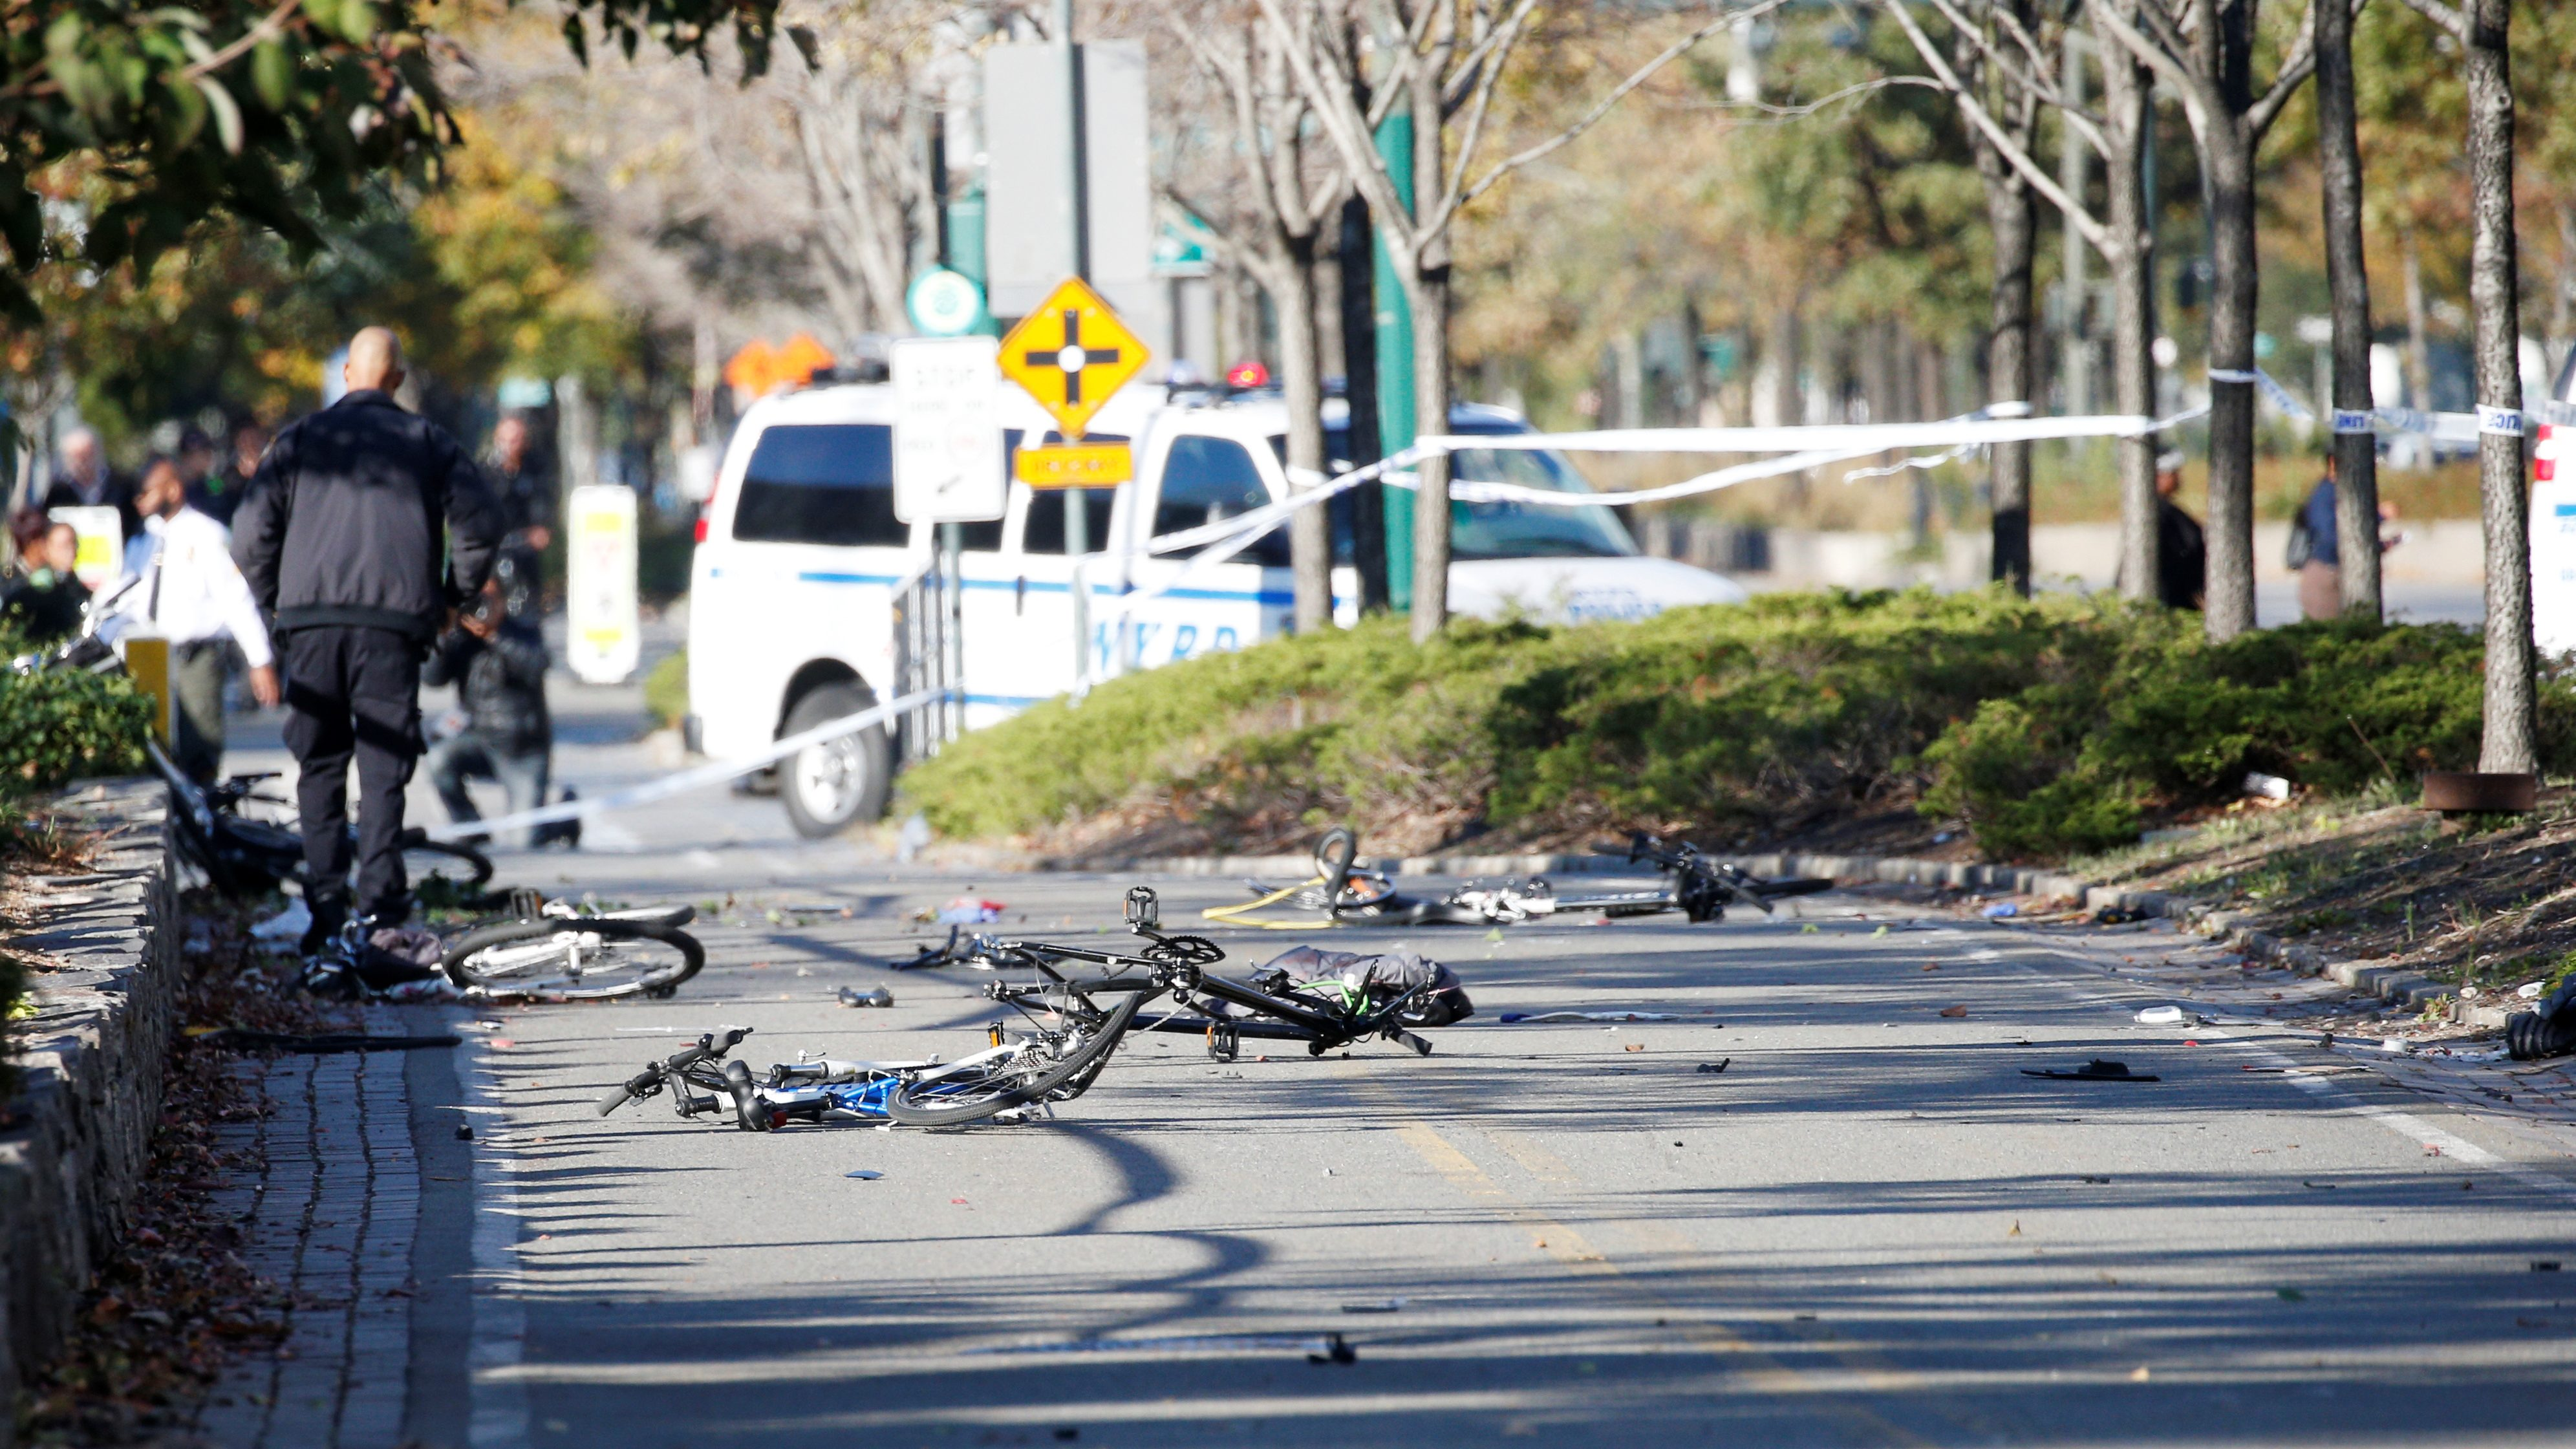 Multiple bikes are crushed along a bike path in lower Manhattan in New York